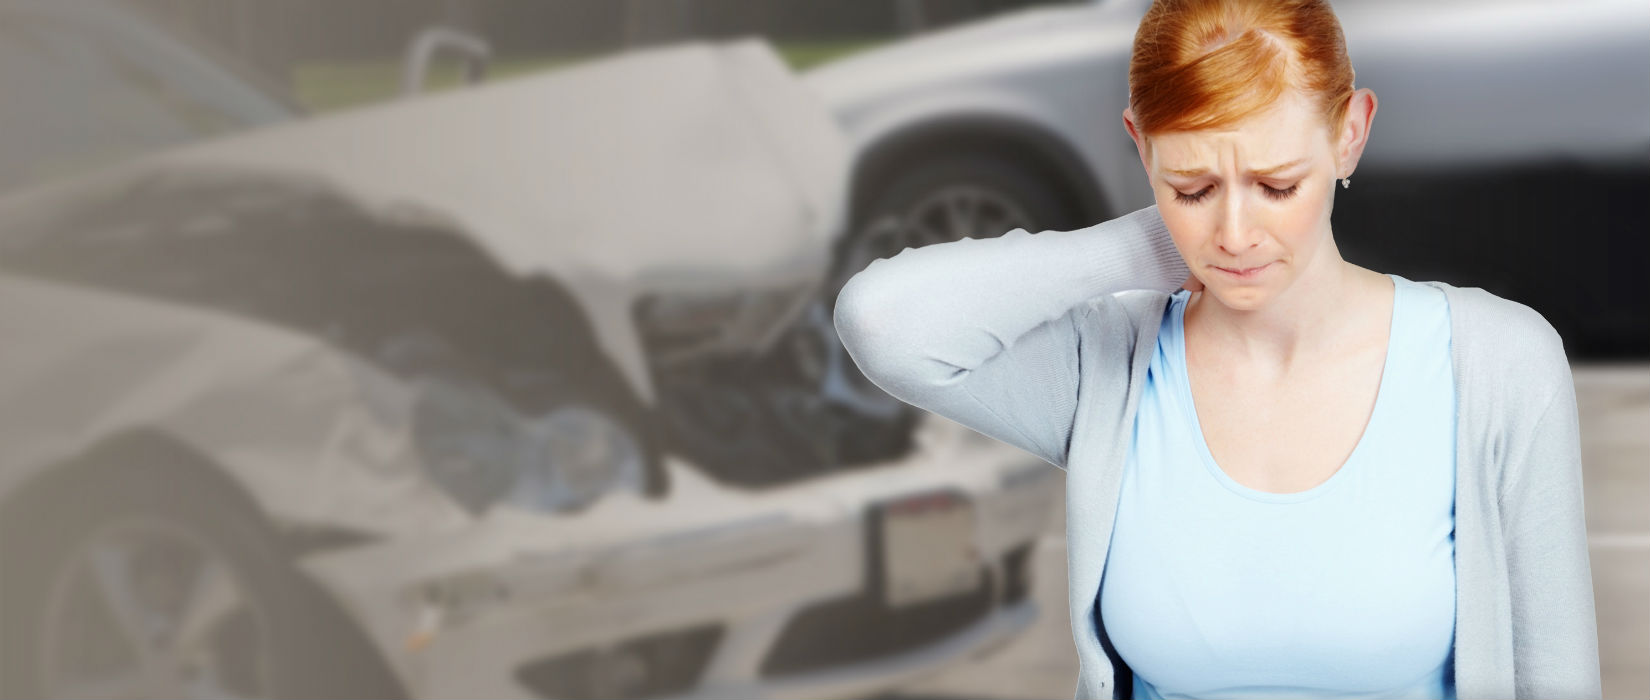 auto injury chiropractor tustin california 92780